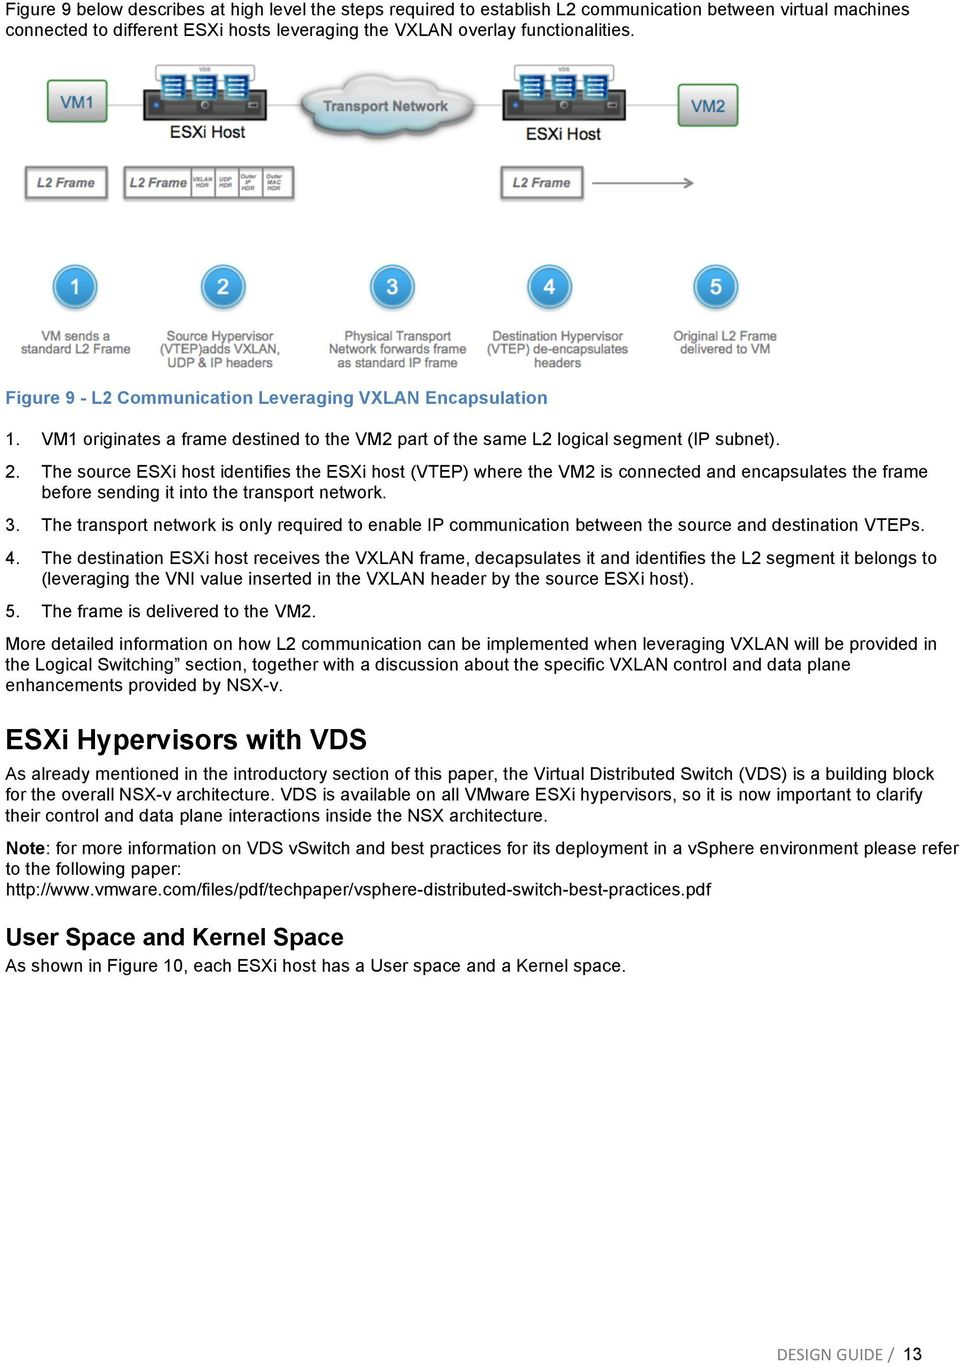 The source ESXi host identifies the ESXi host (VTEP) where the VM2 is connected and encapsulates the frame before sending it into the transport network. 3.